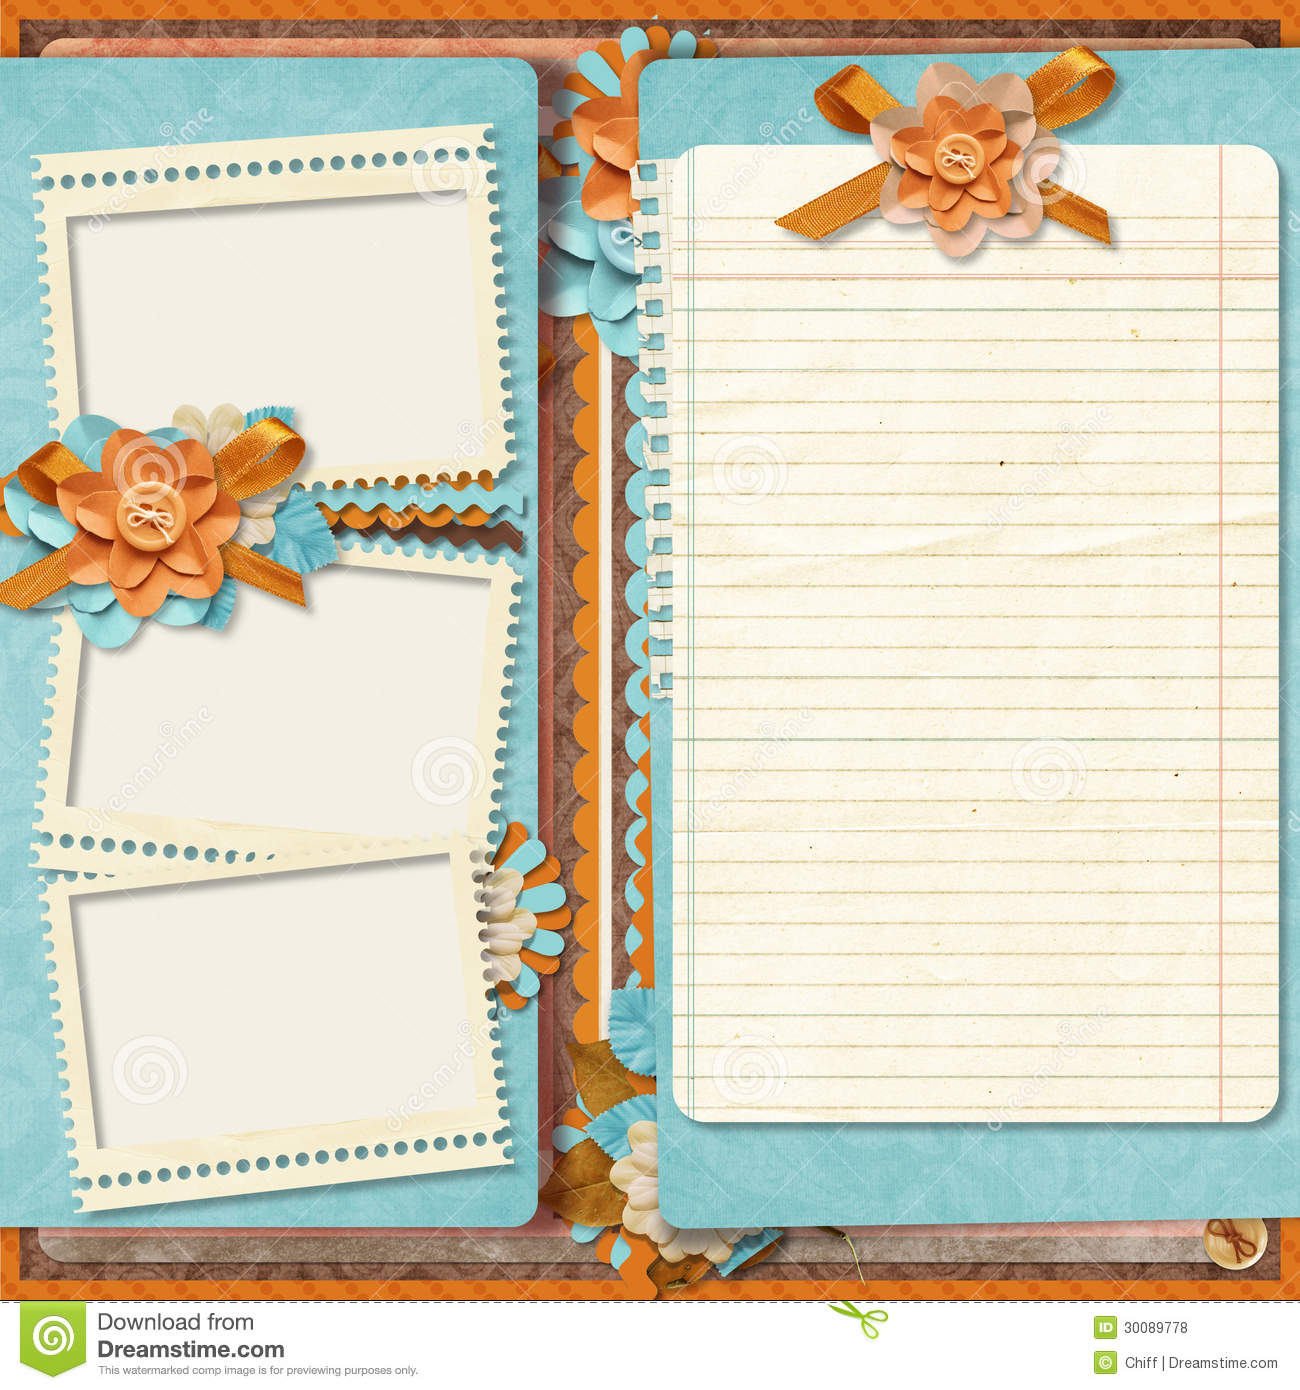 16 design digital scrapbook templates images digital for Templates for scrapbooking to print